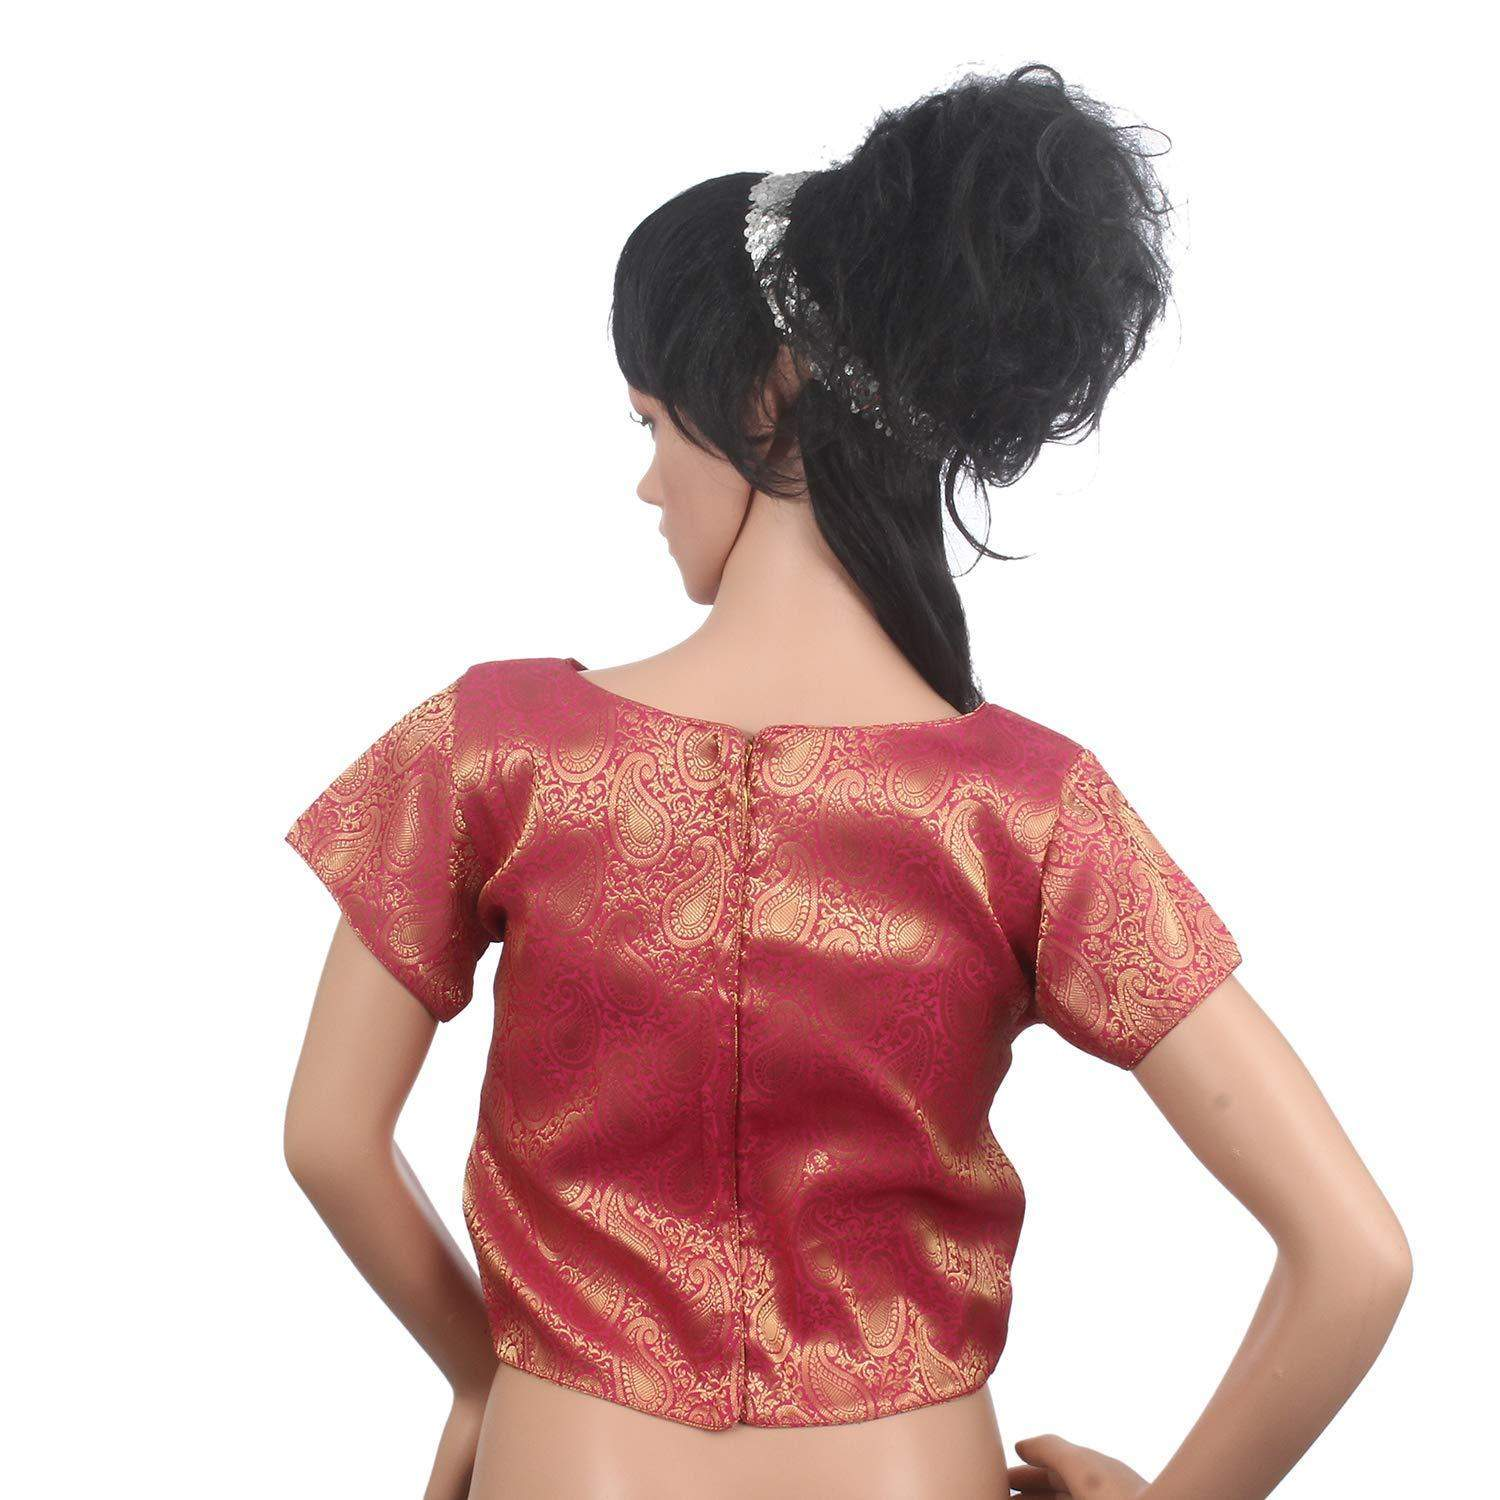 Readymade Designer Saree Blouse For Women's Pink - Bagaholics Gift